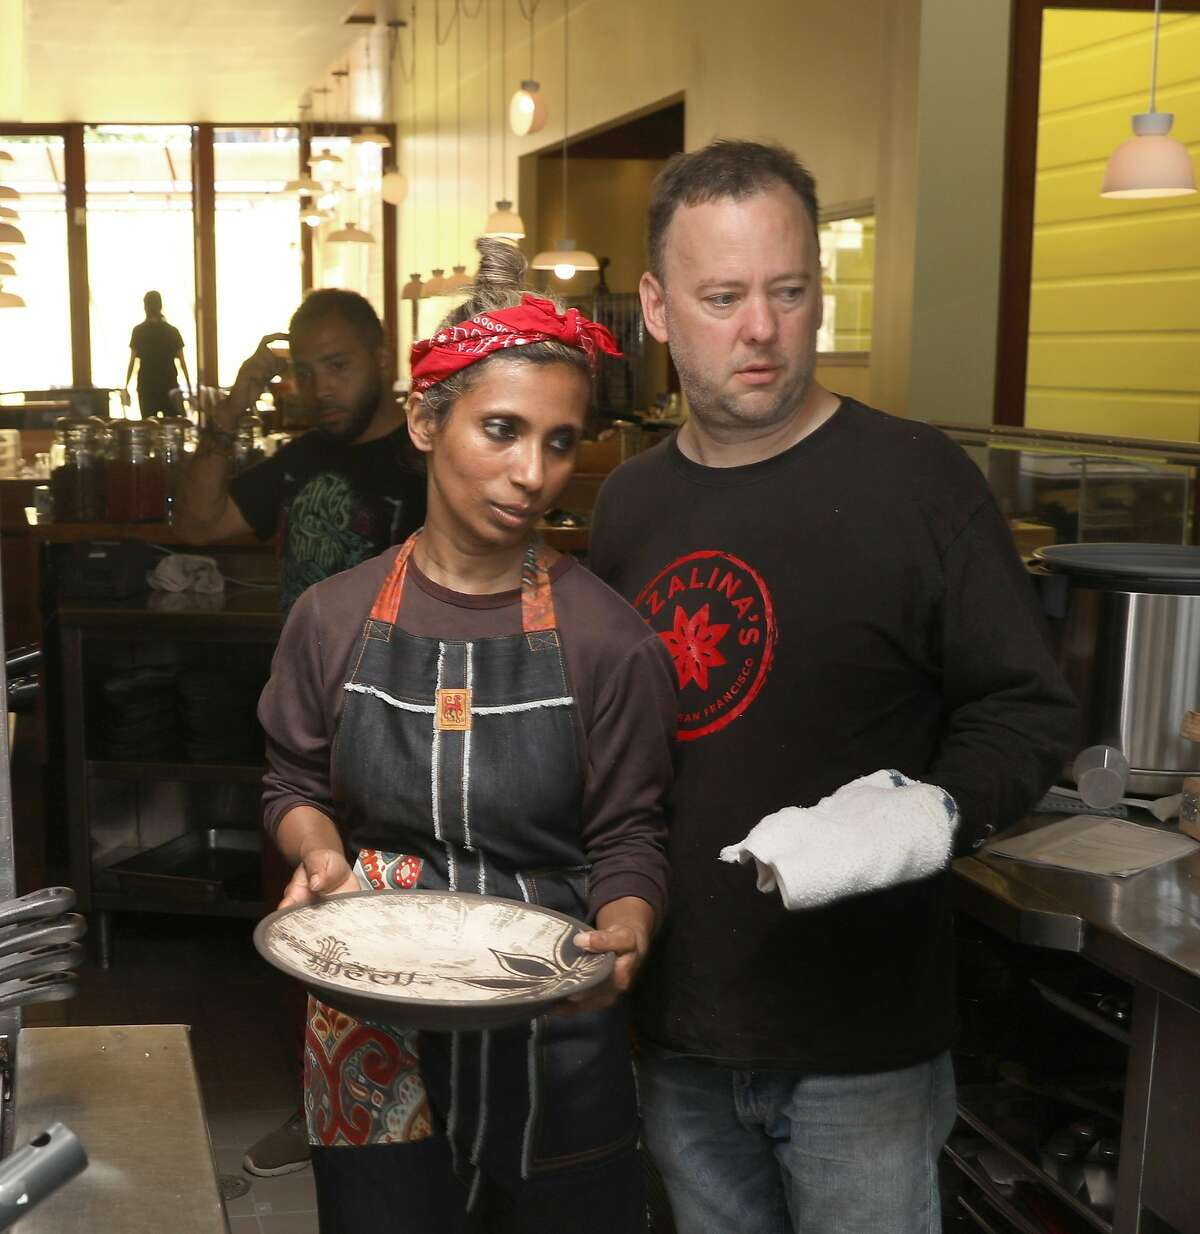 Owner/creator Azalina Eusope (left) with her business partner Tim Benson (right) as they test out pans and plates at Mahila on Wednesday, June 12, 2019 in San Francisco, Calif. Mahila, the first full-service Mamak (Indian Muslim) restaurant to ever open in San Francisco.